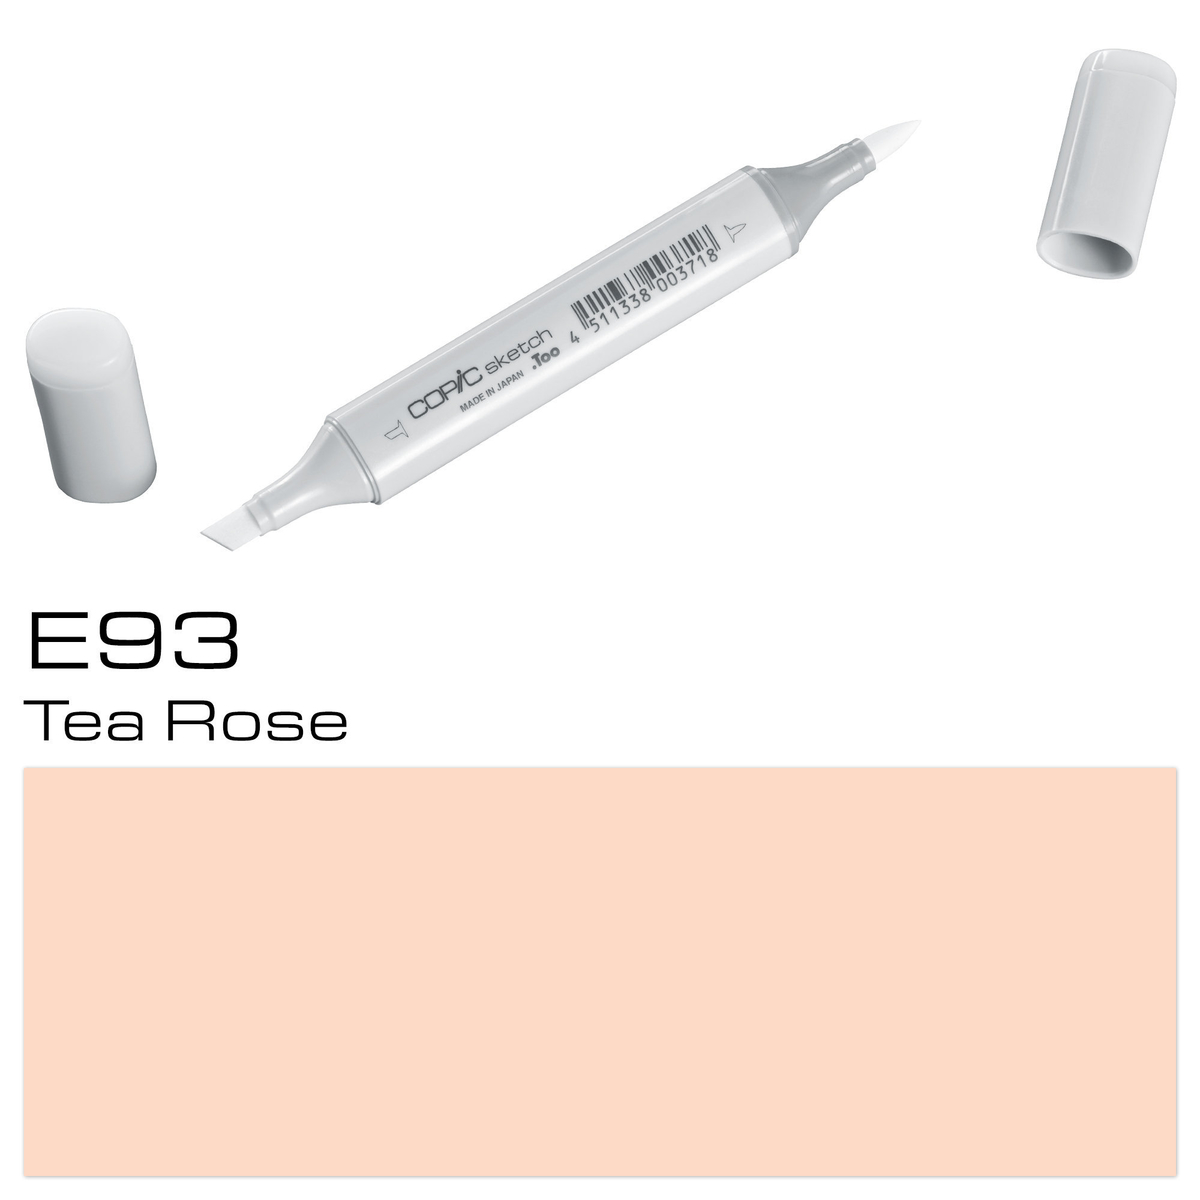 Copic Sketch E 93 tea rose